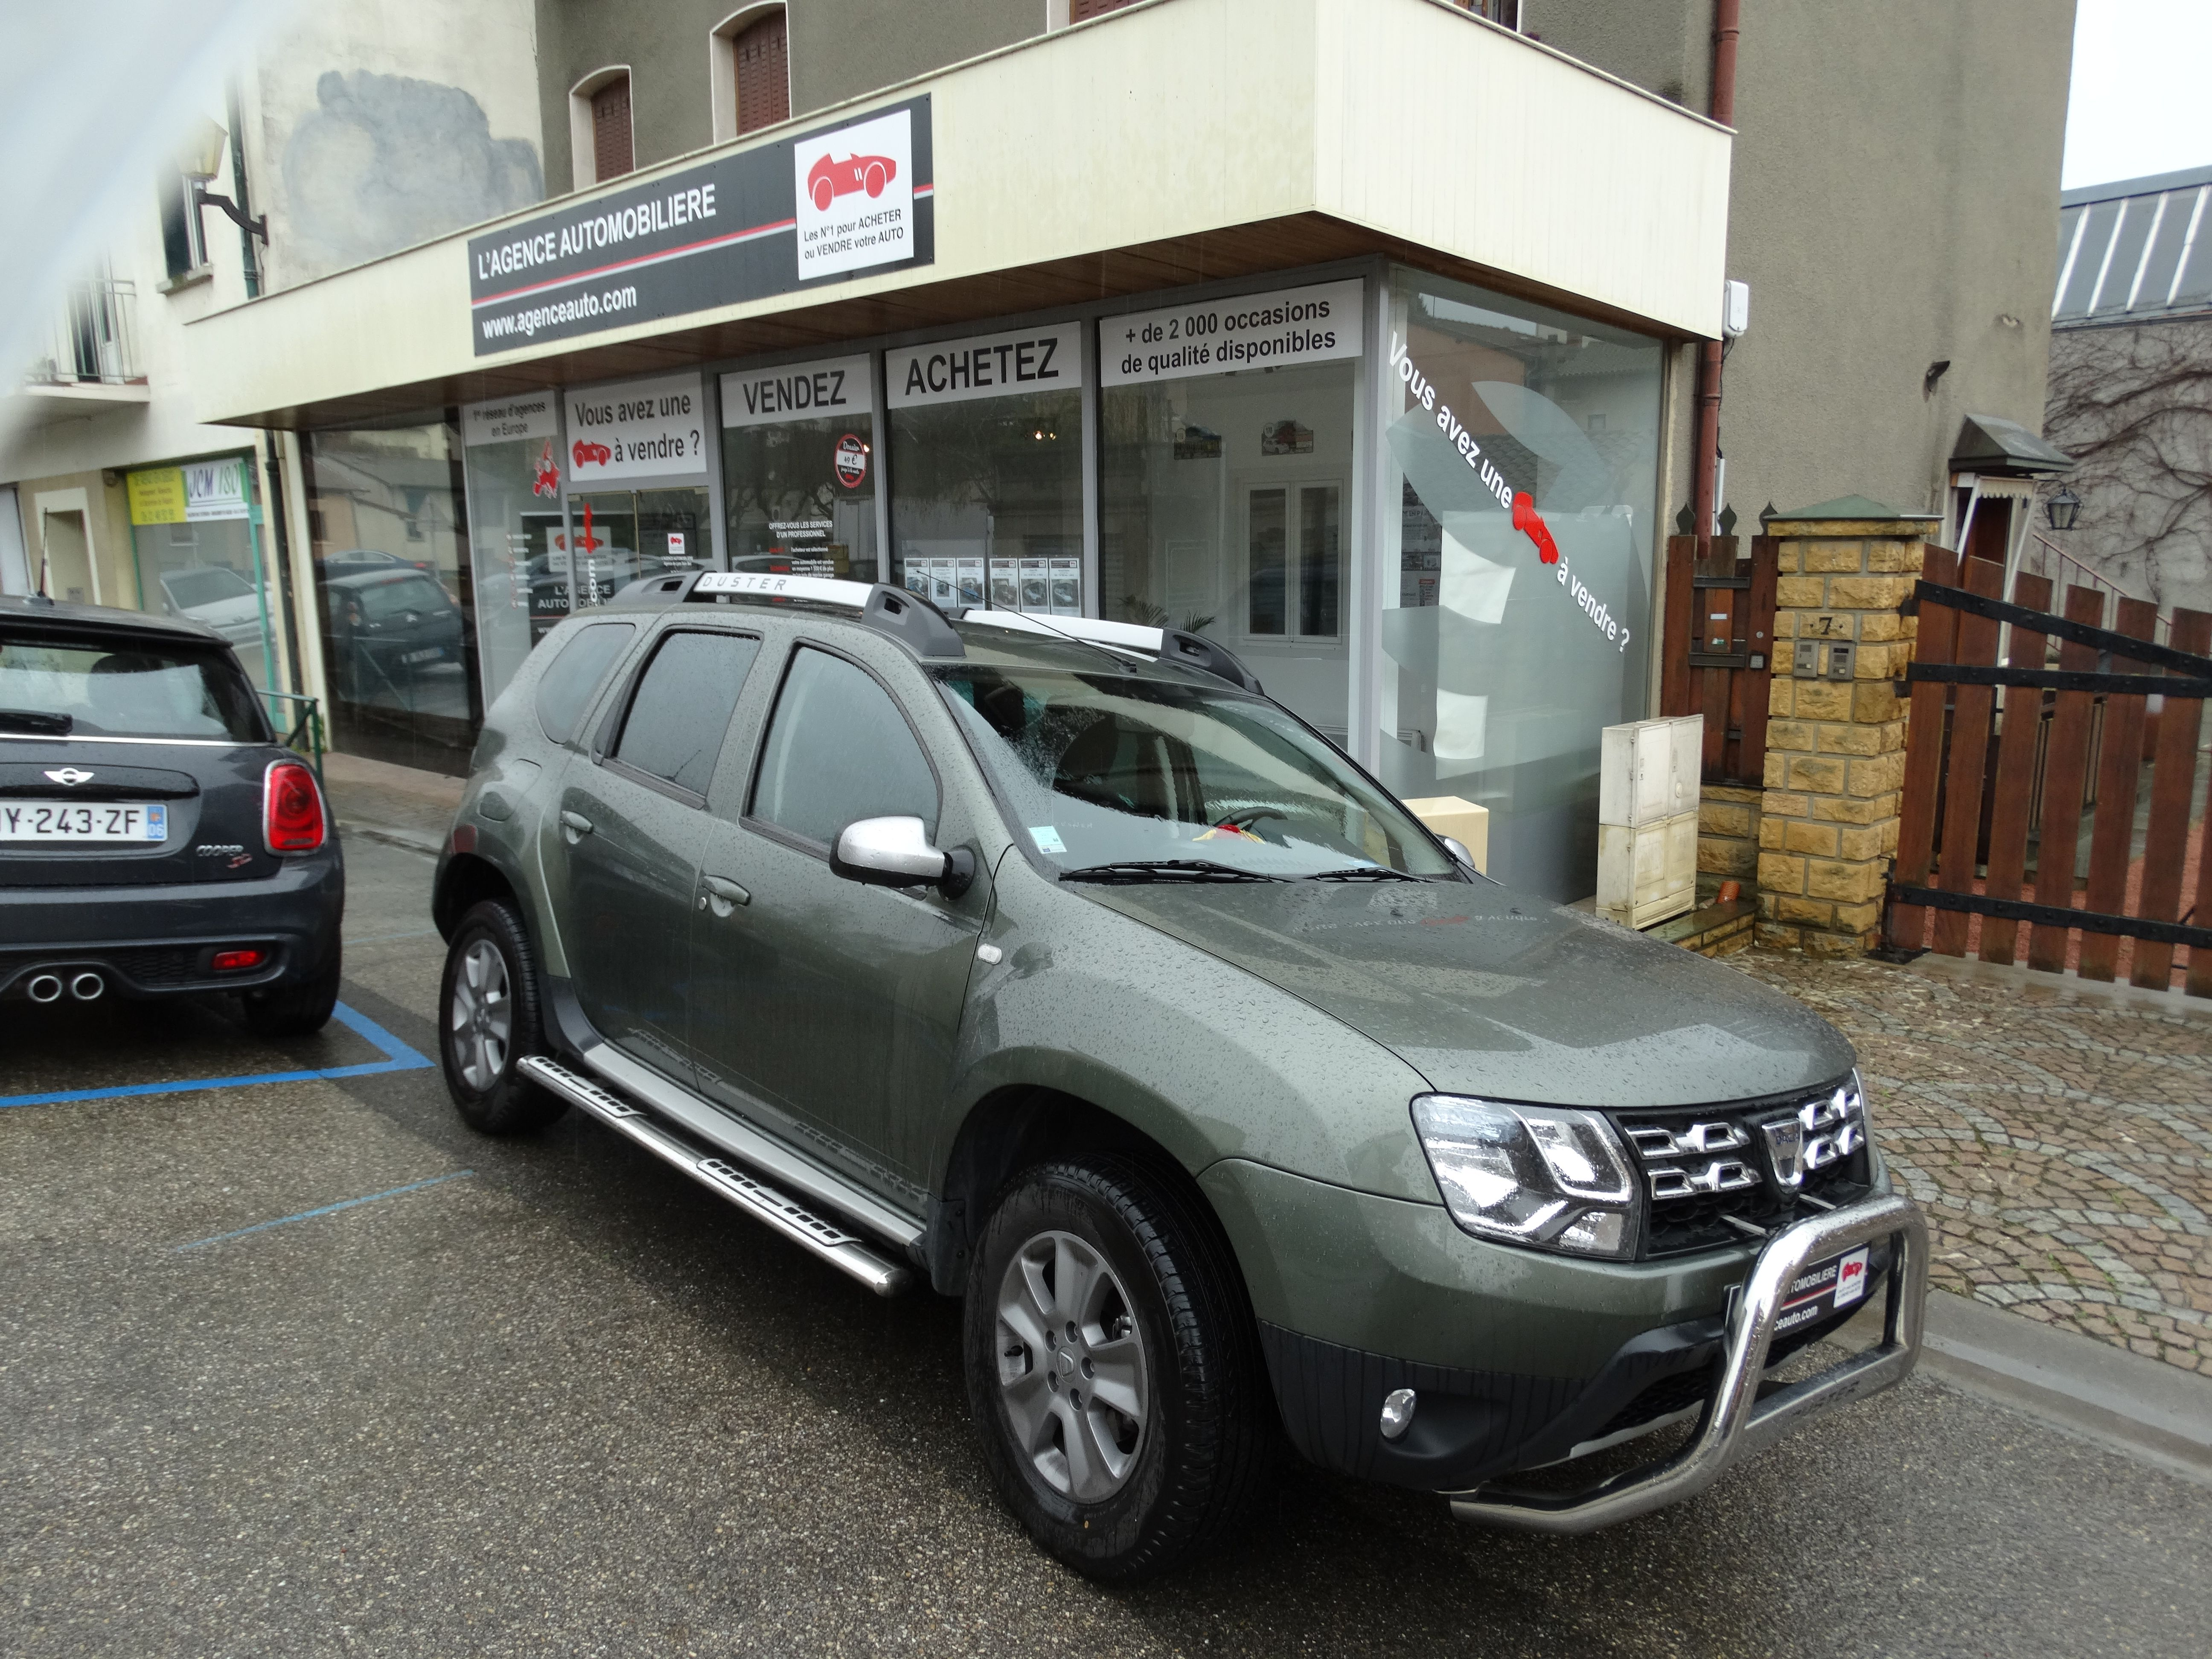 dacia duster 1 5 dci 110 prestige 4x4 occasion lyon sain bel pas cher voiture occasion rh ne. Black Bedroom Furniture Sets. Home Design Ideas